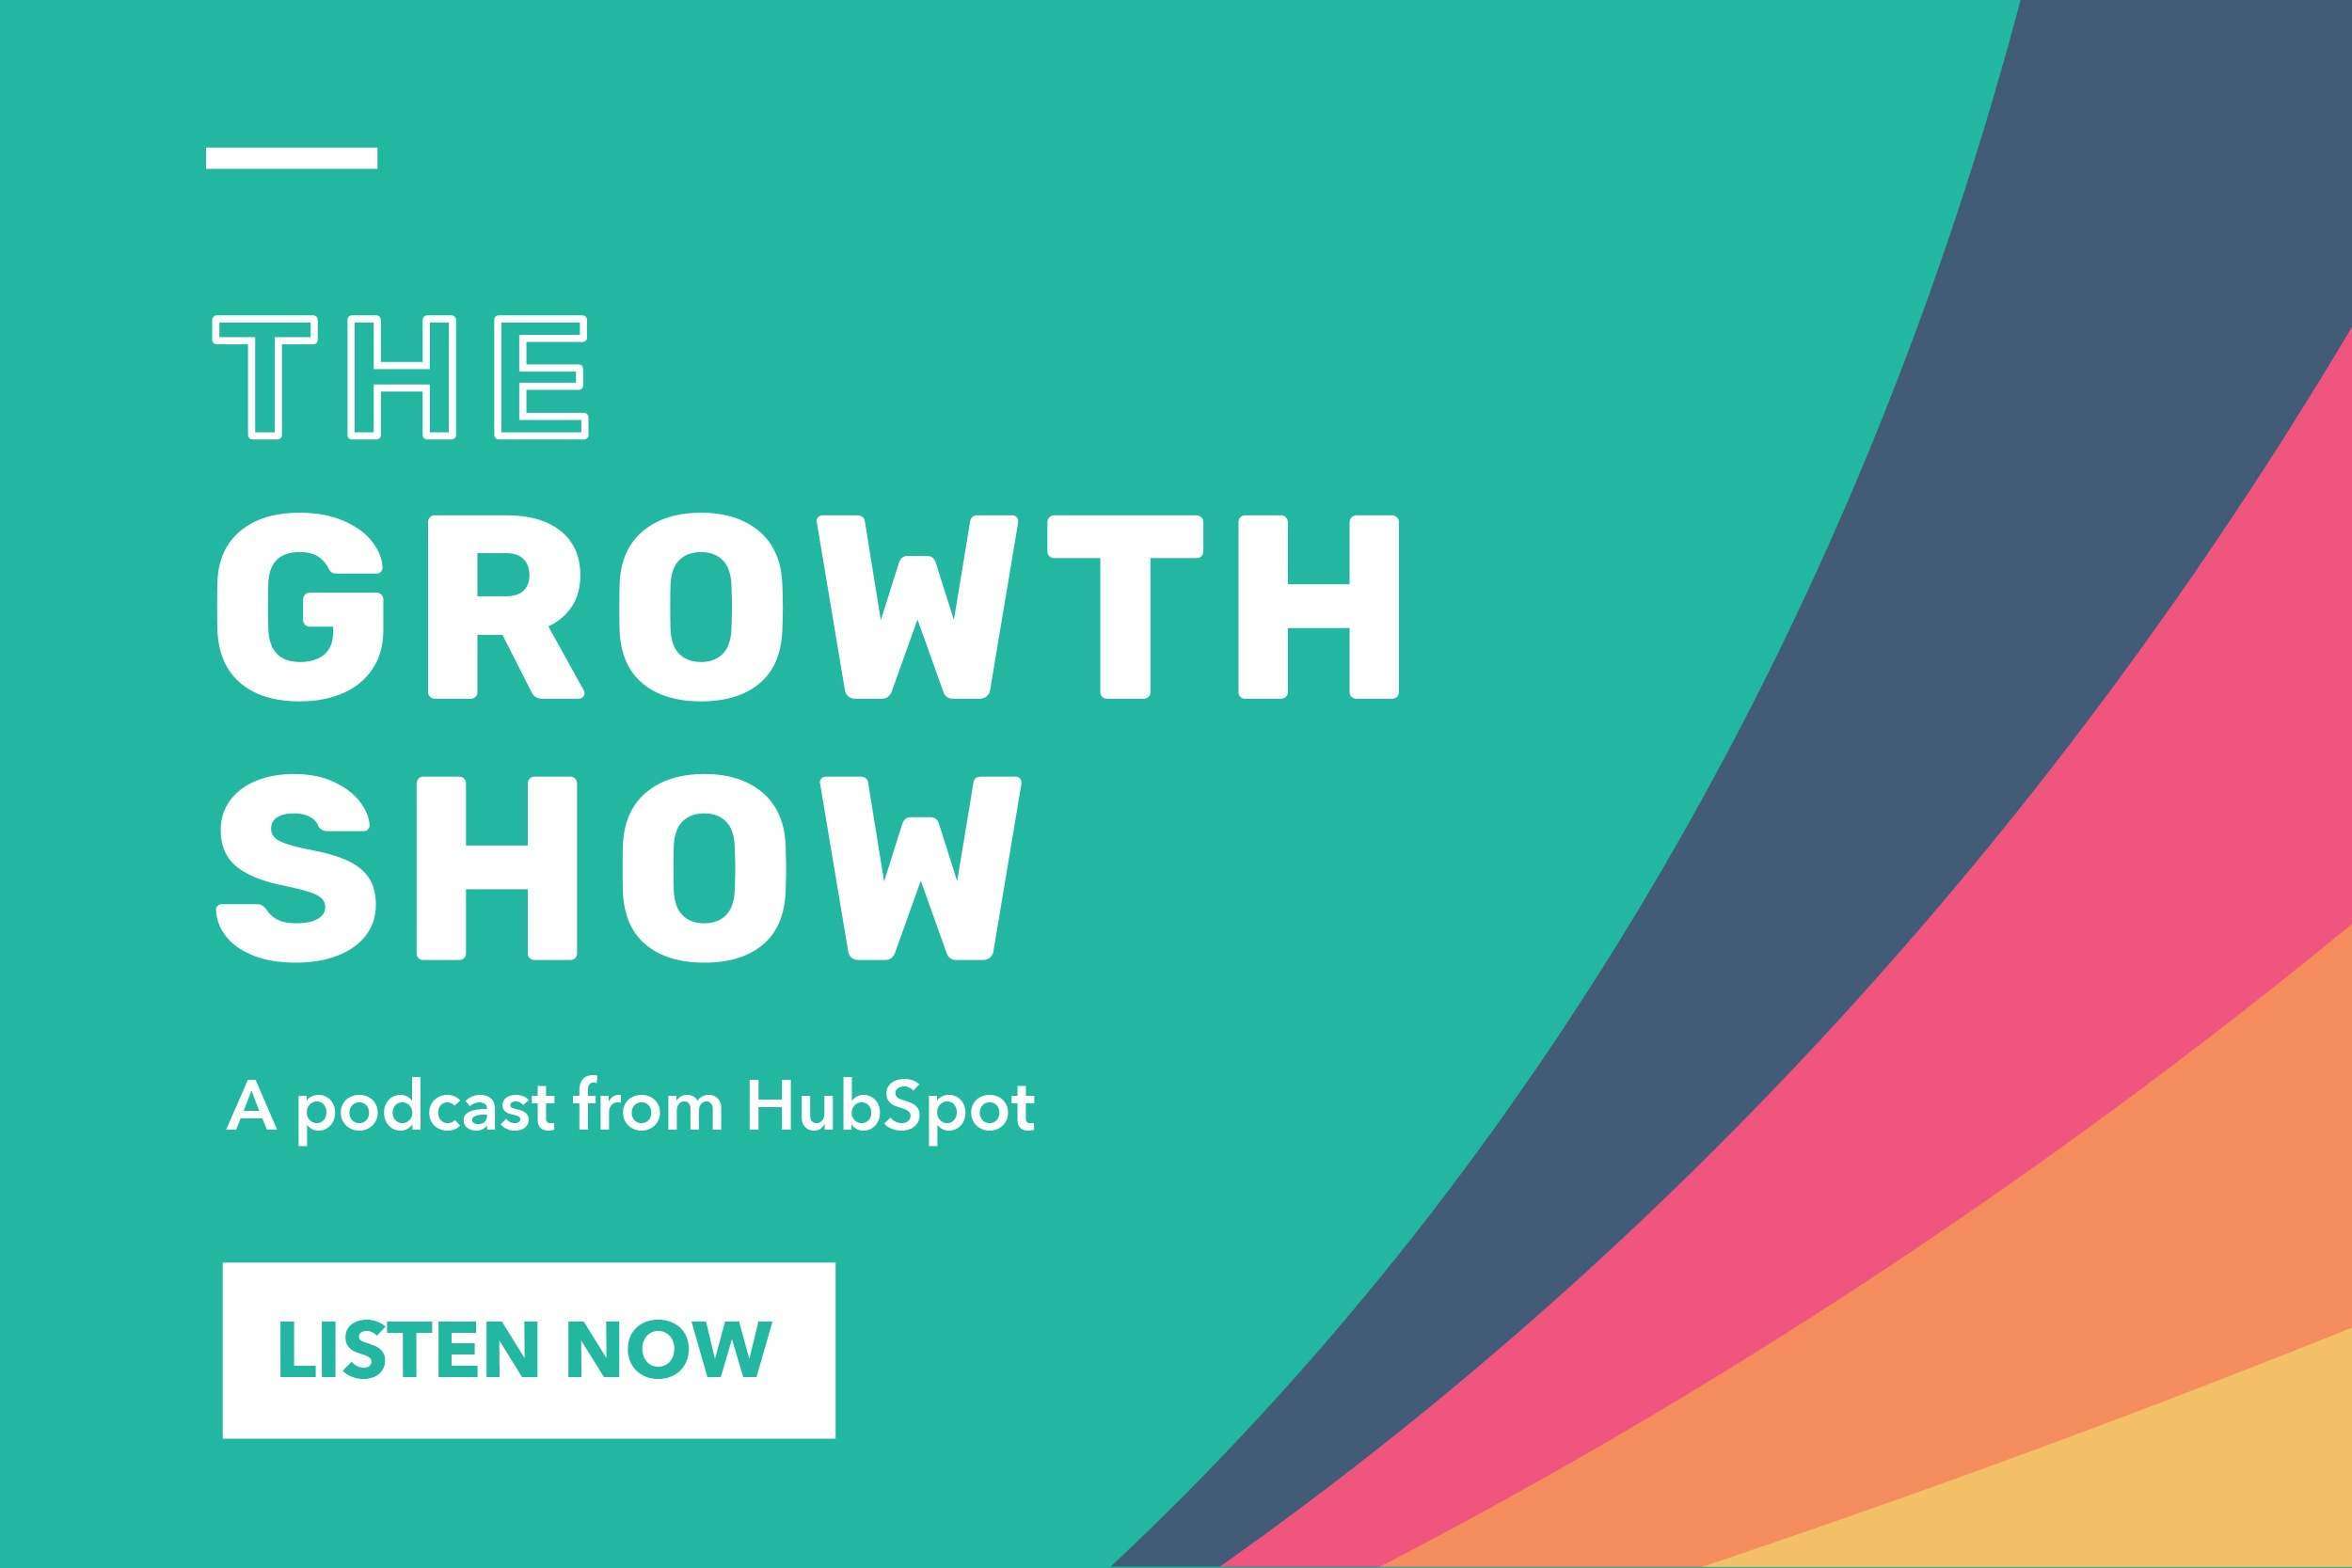 HubSpot Launches Season Three of the Growth Show, Featuring Interviews with ClassPass, Glossier, Spartan, and More